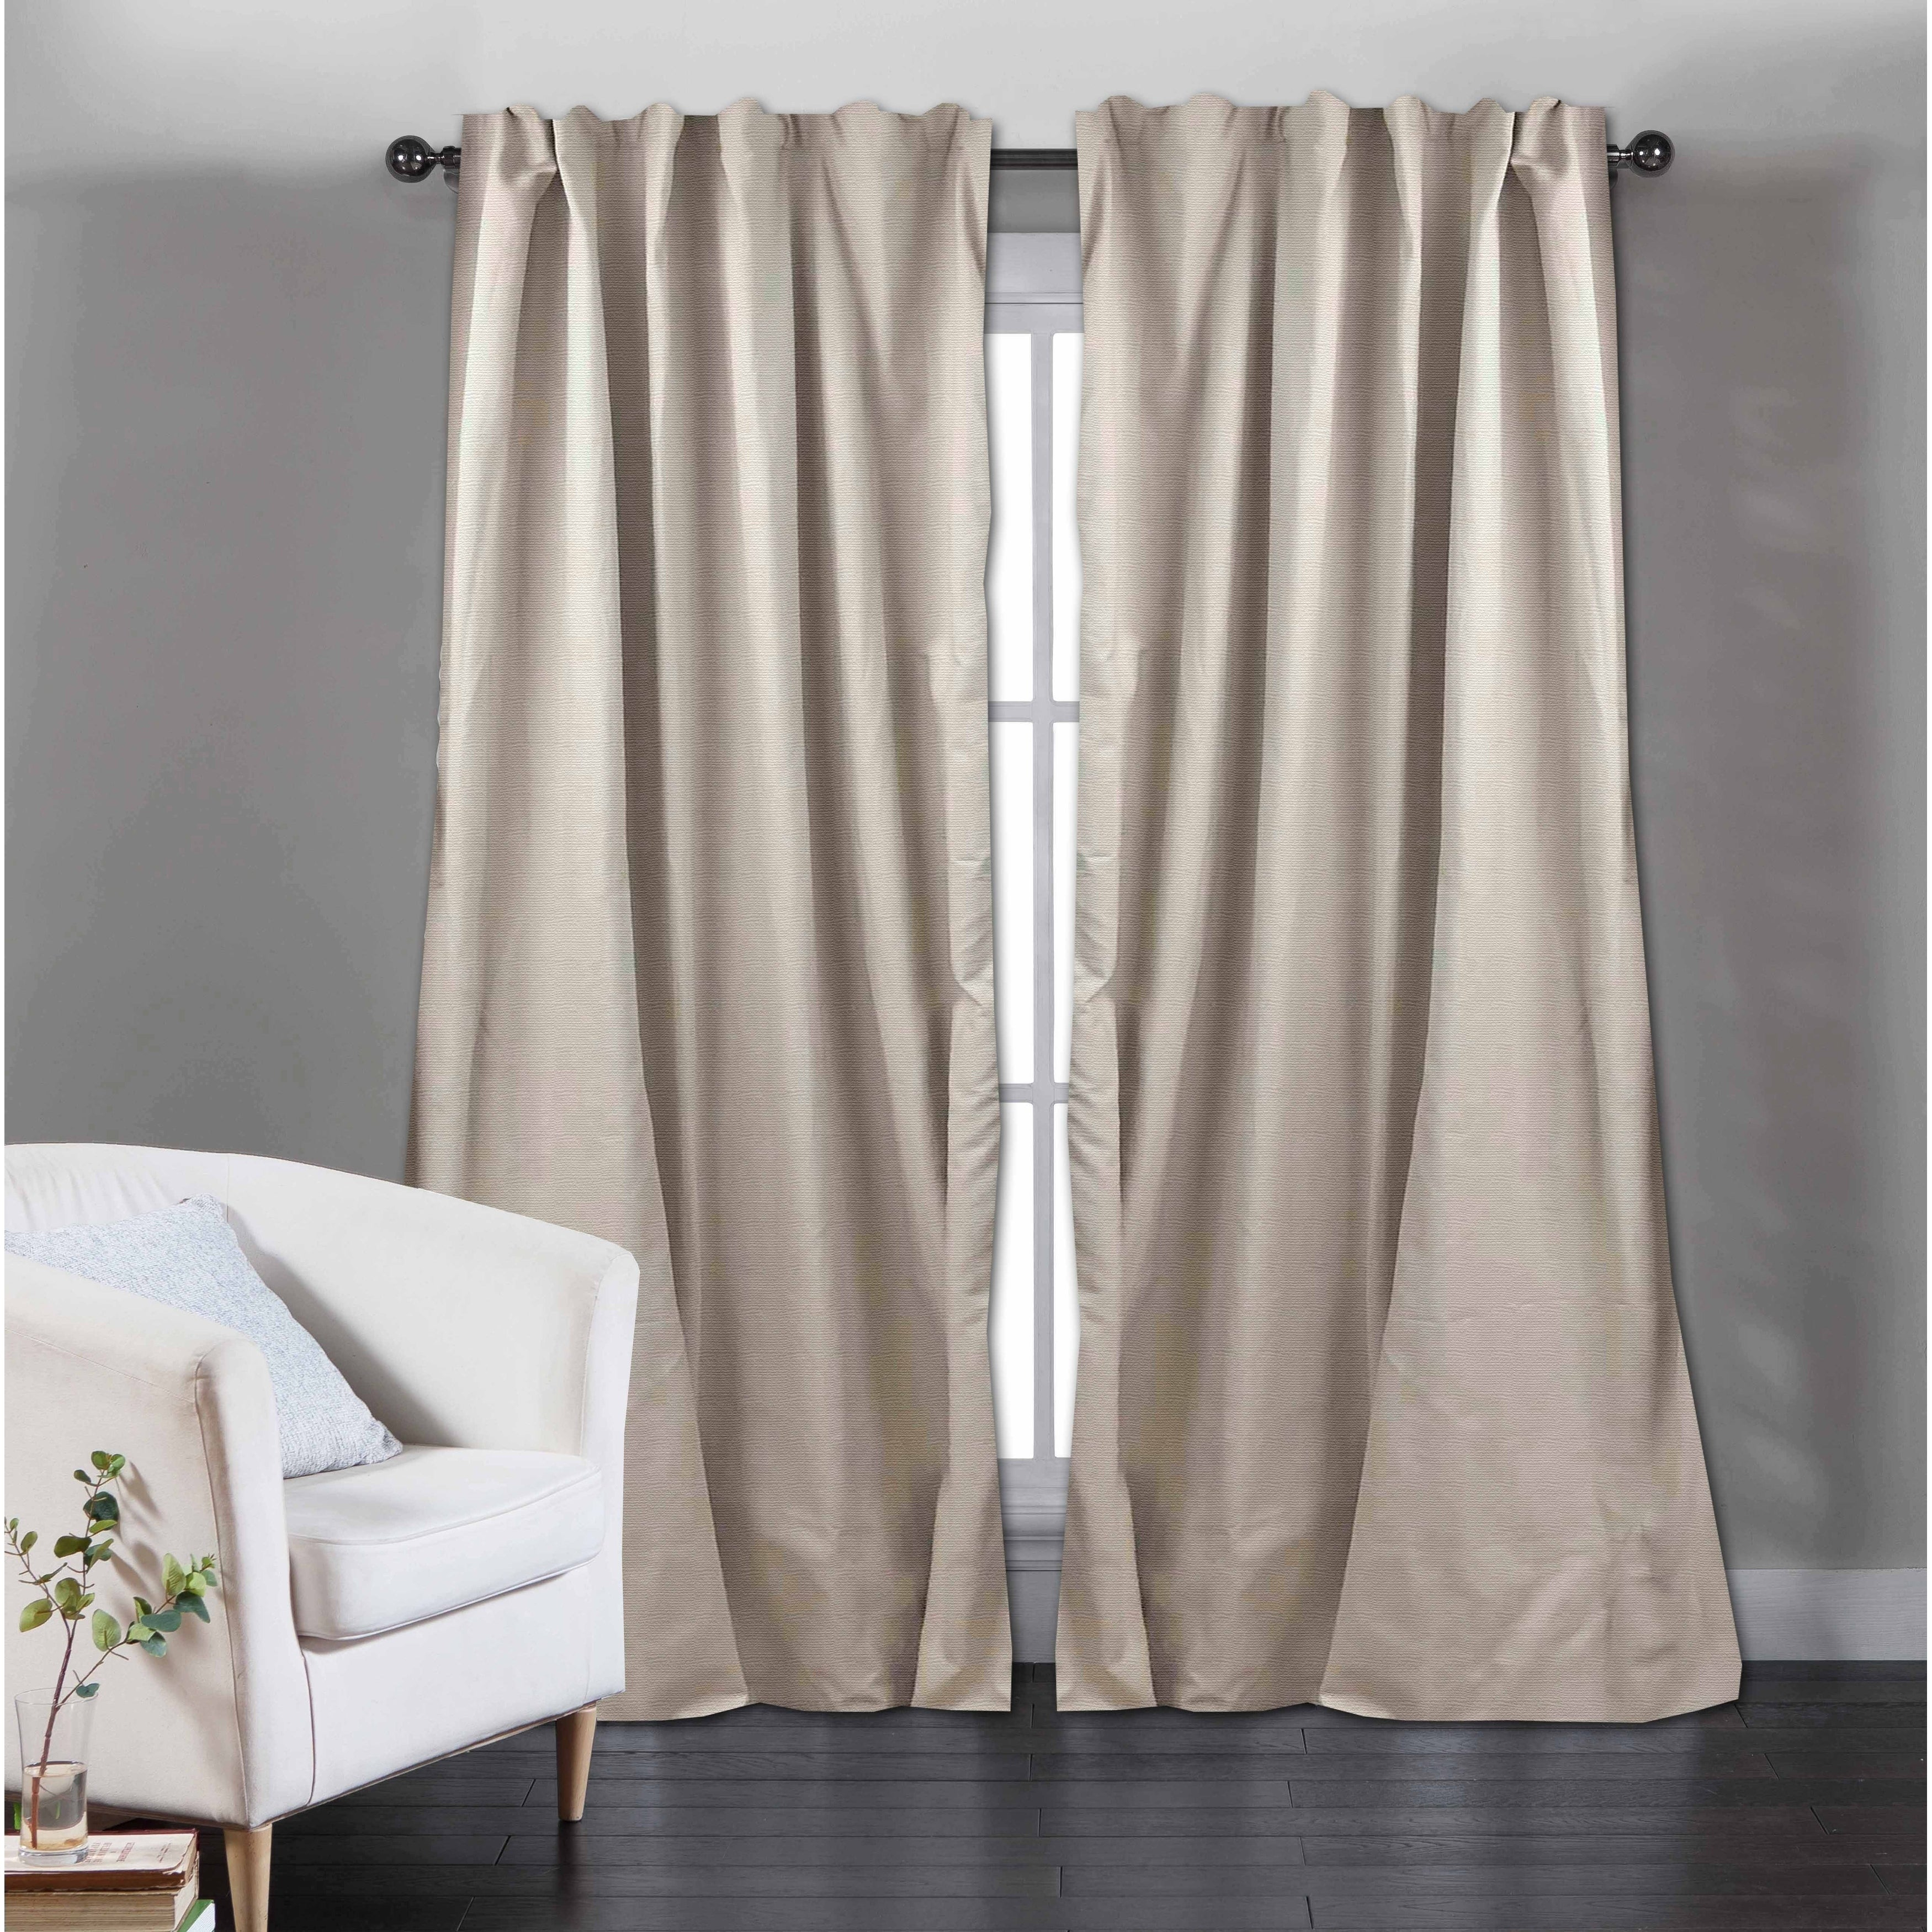 Popular Photo of Solid Cotton Curtain Panels